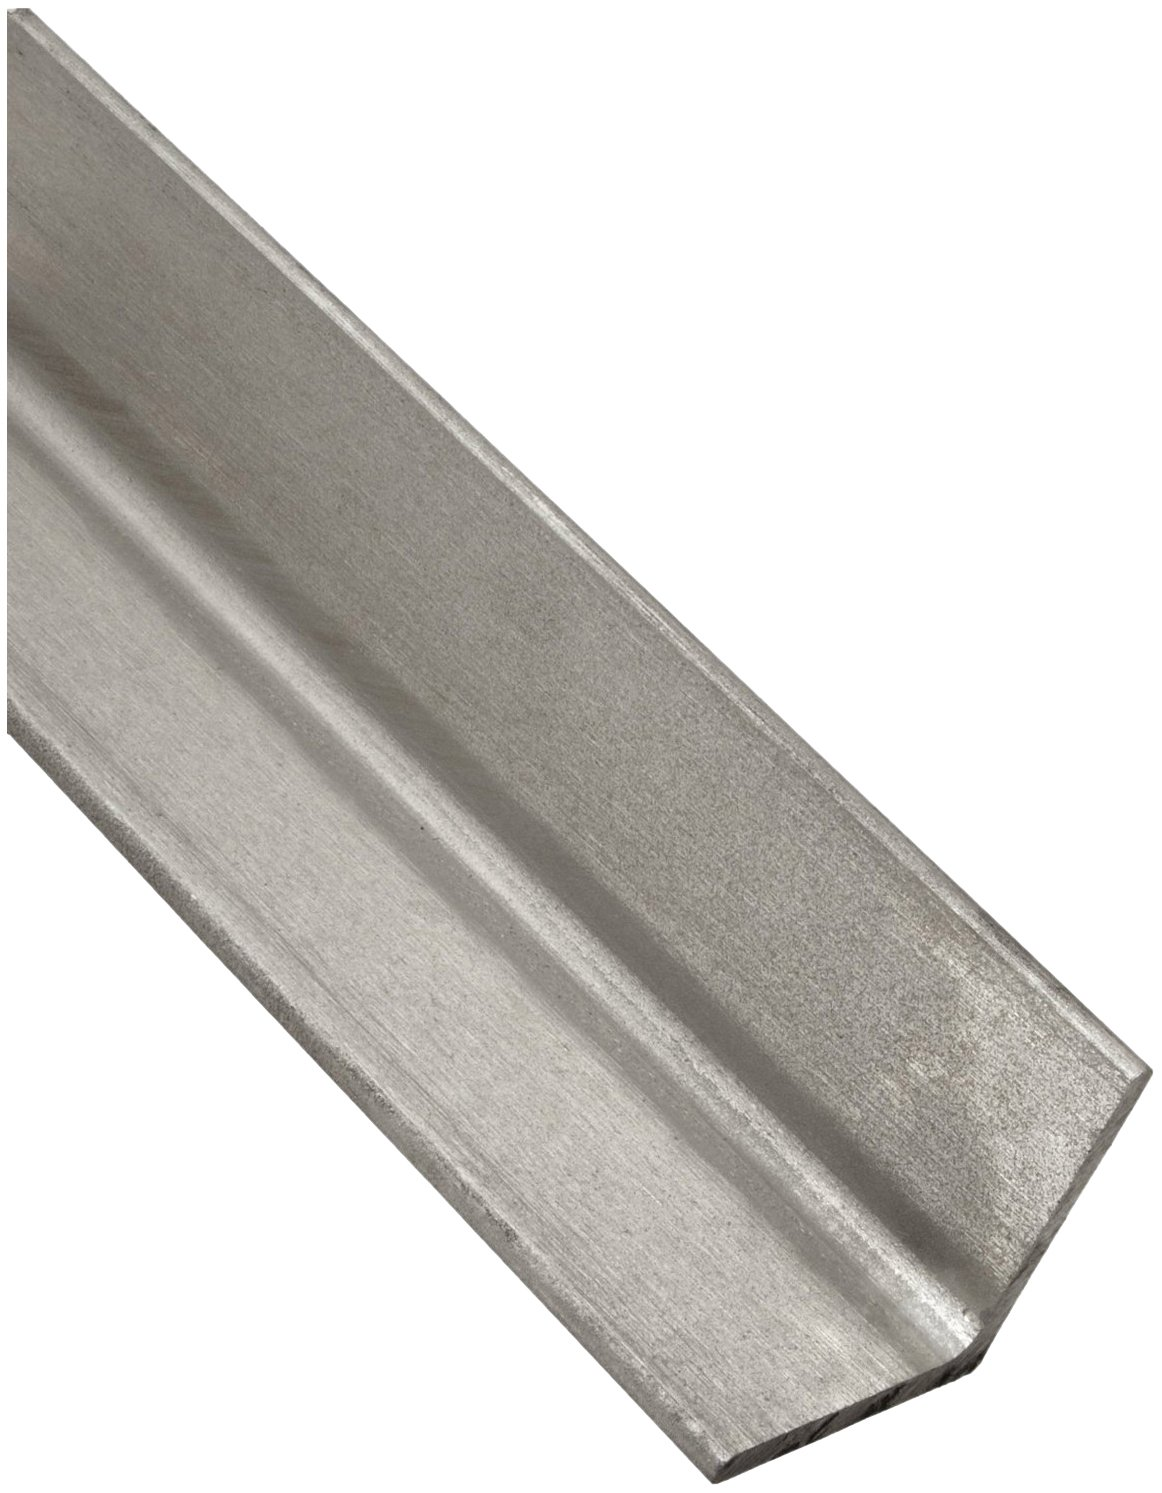 304 Stainless Steel Angle, Unpolished